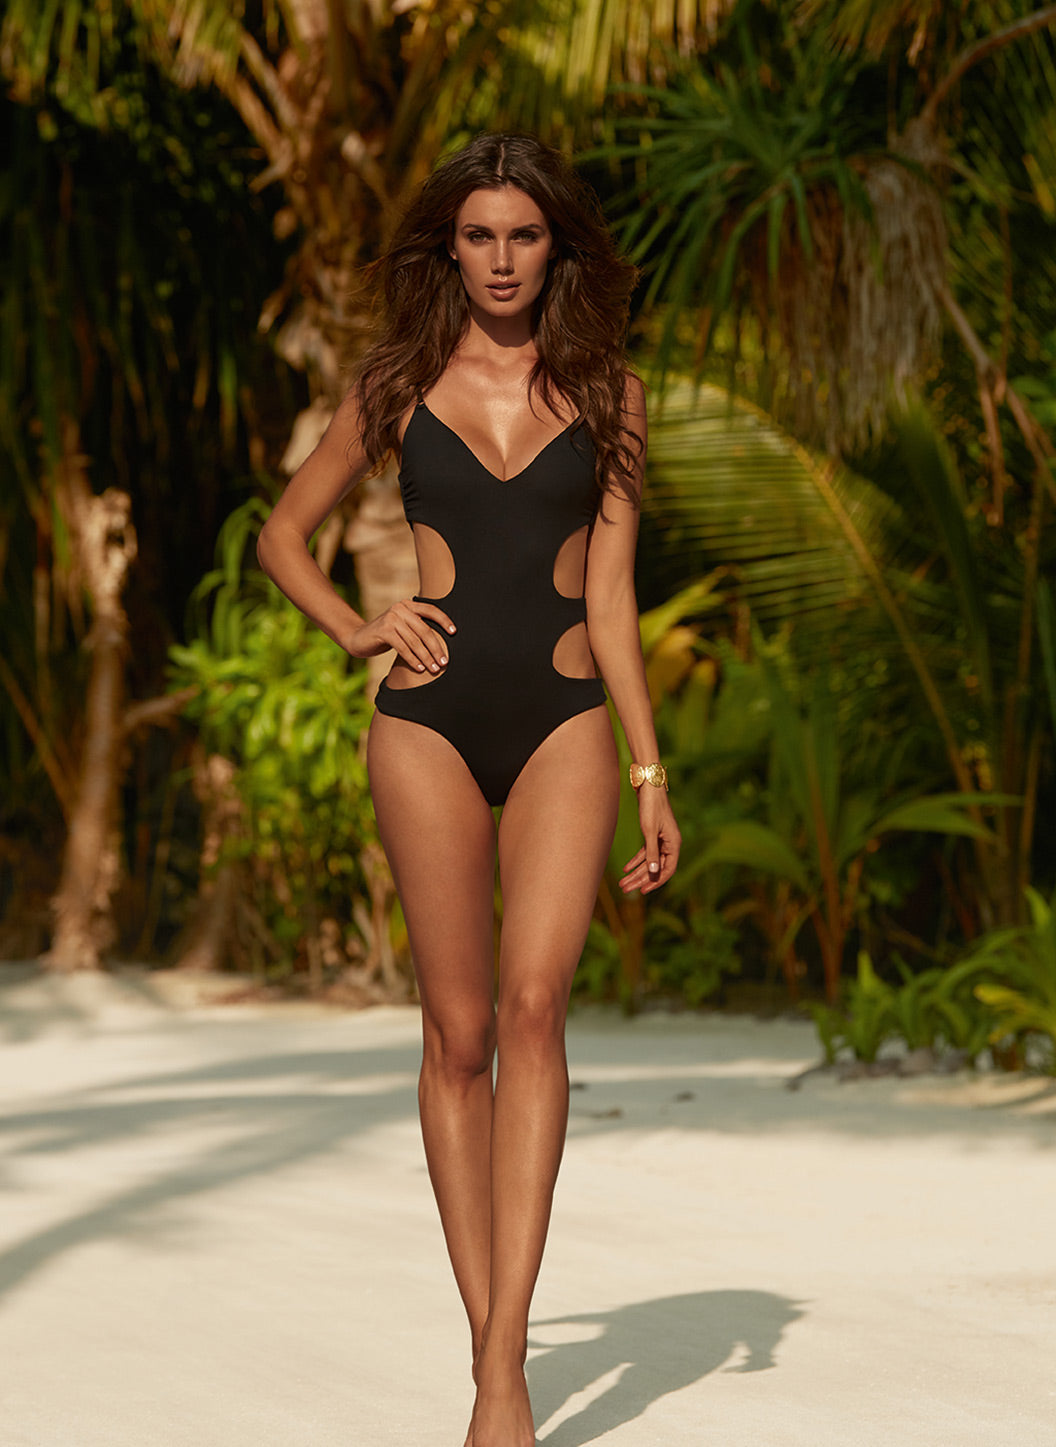 b05014742f Santorini Black Over the Shoulder Cut Out One Piece Swimsuit ...